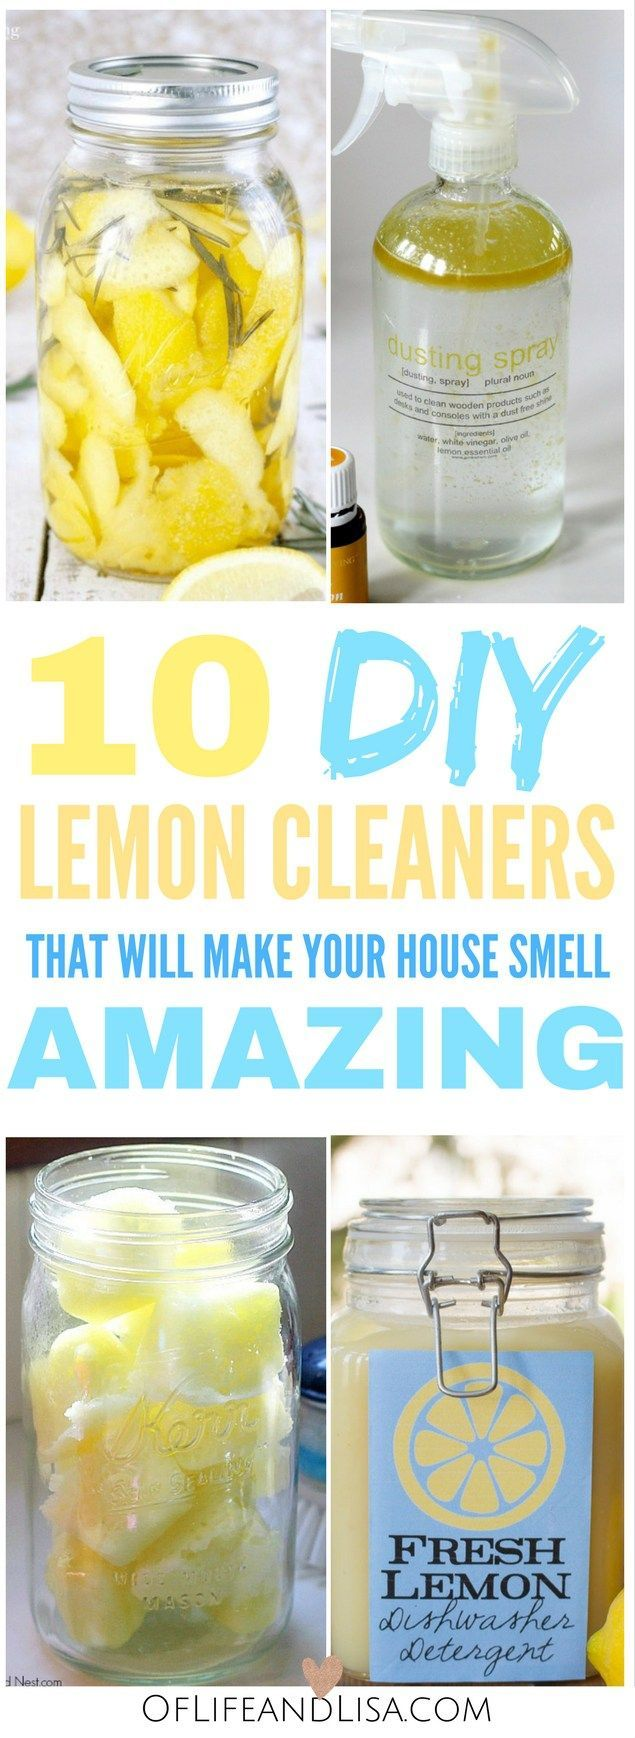 These non-toxic lemon cleaners are perfect for cleaning house.